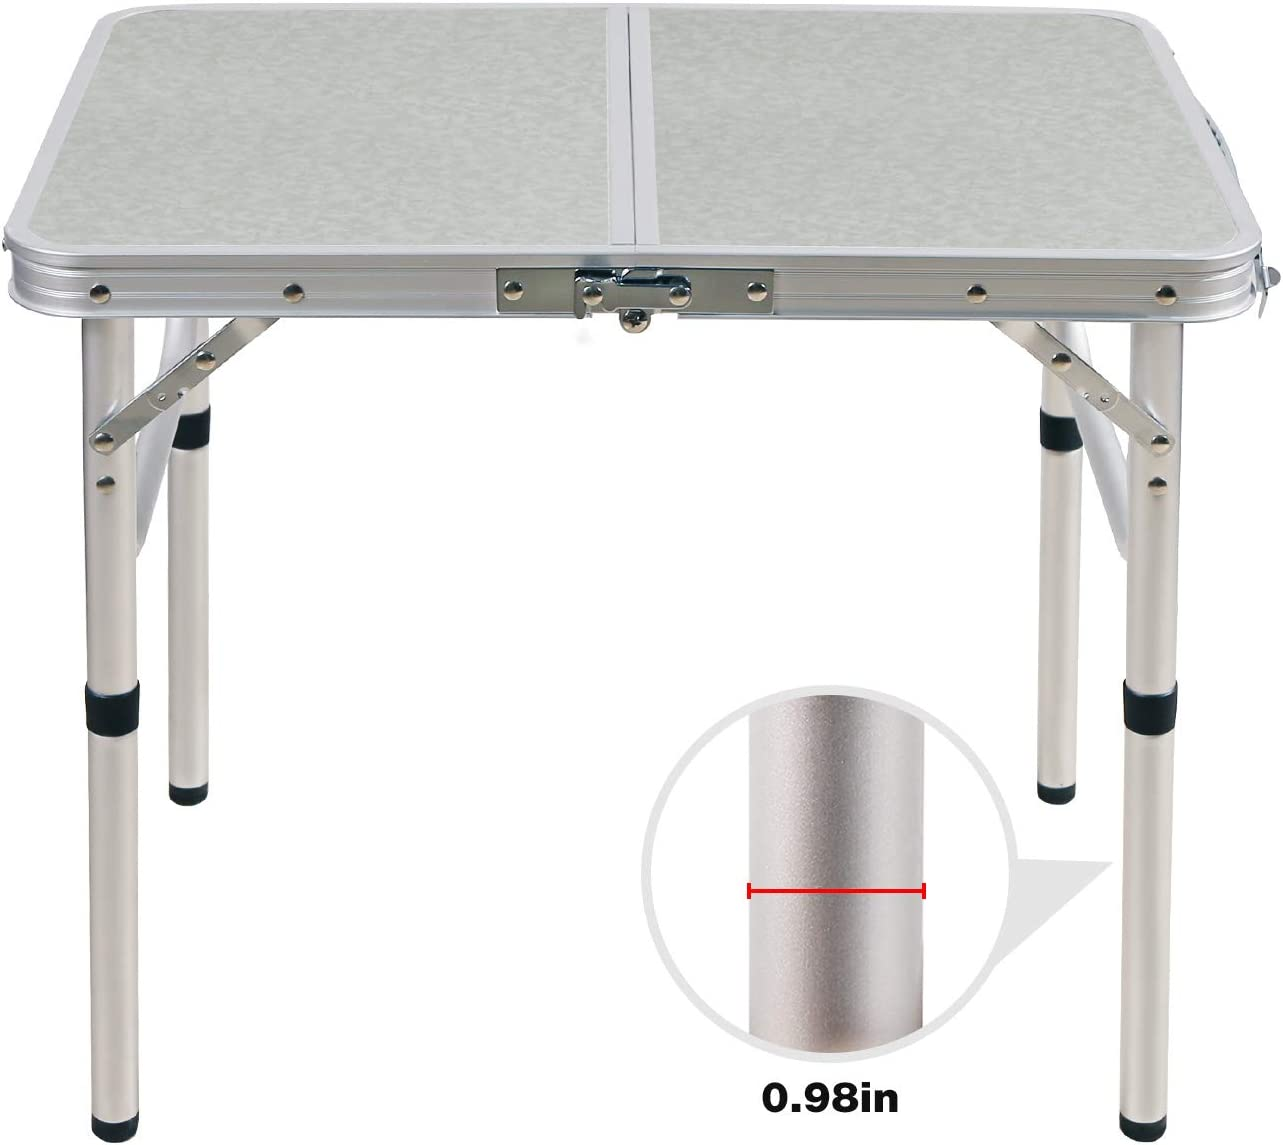 CAMPMOON Folding Camping Table 2//3//4 Foot White Great for Outdoor Cooking Picnic Lightweight Portable Aluminum Folding Table with Adjustable Legs